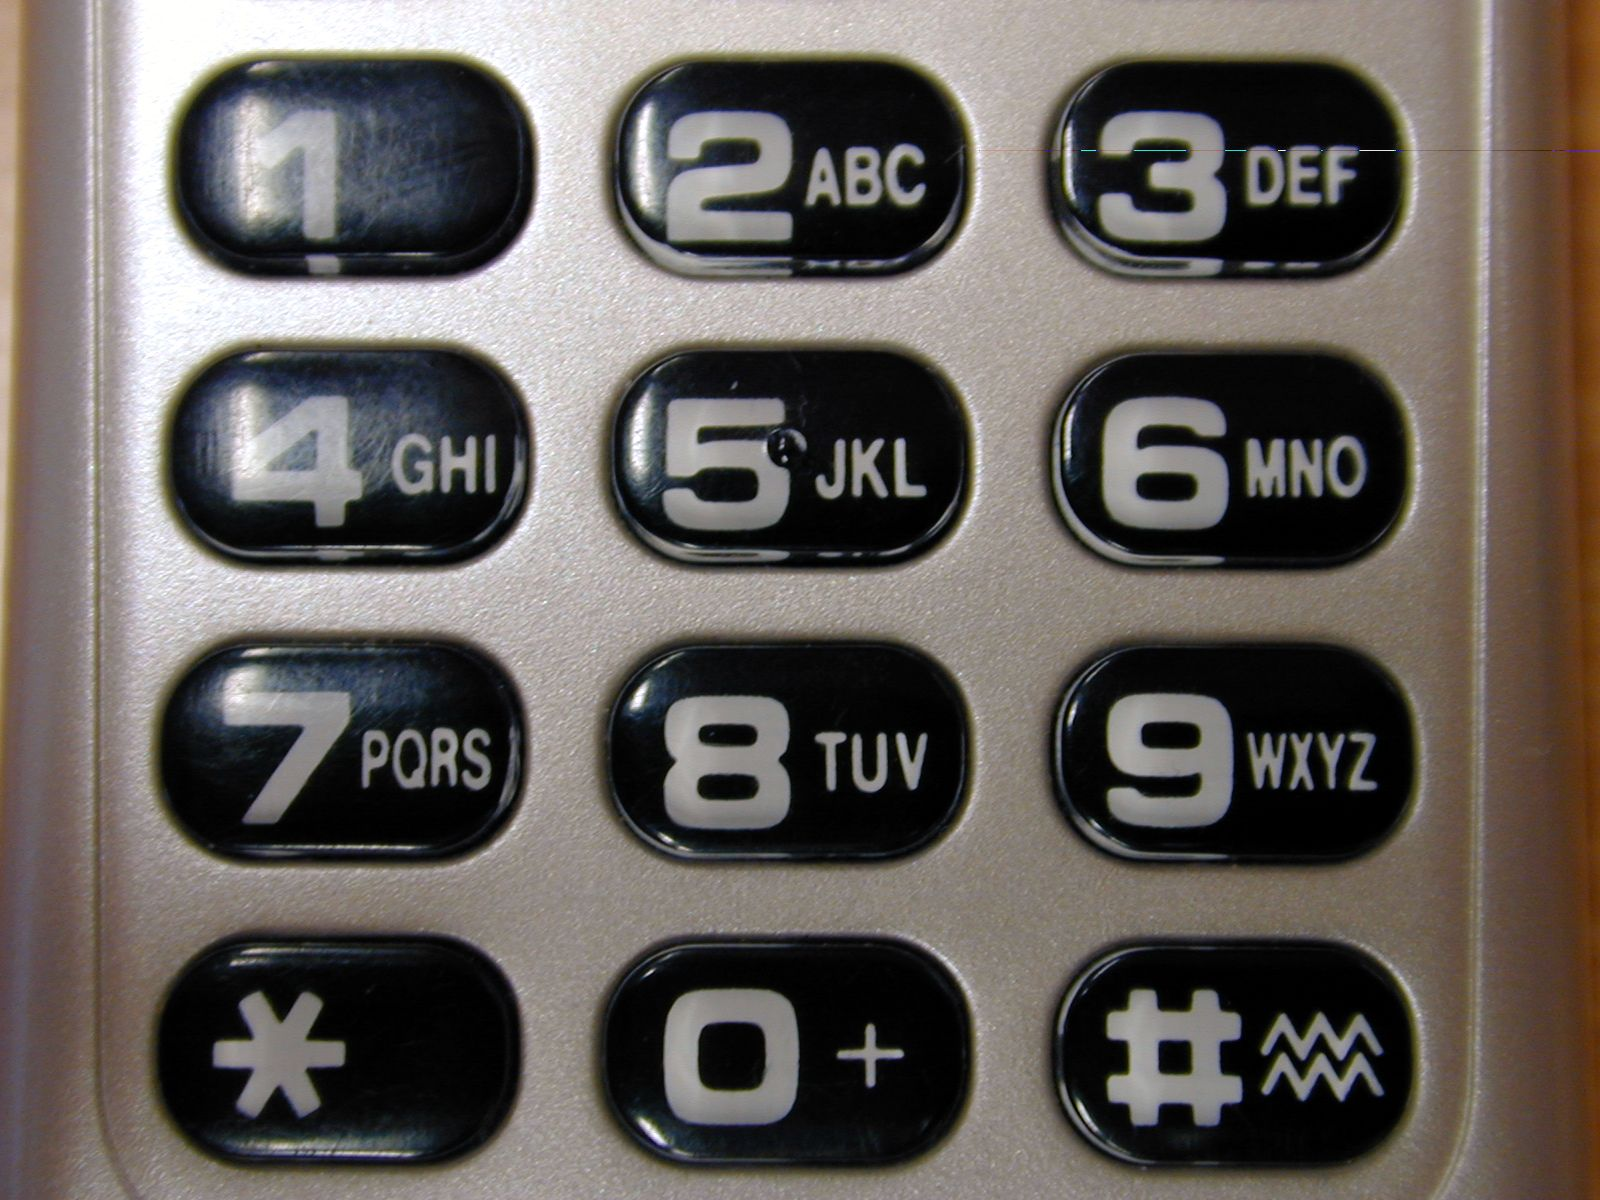 dial keyboard button buttons numbers typo typography 1 2 3 4 5 6 7 8 9 0 gsm mobile telephone